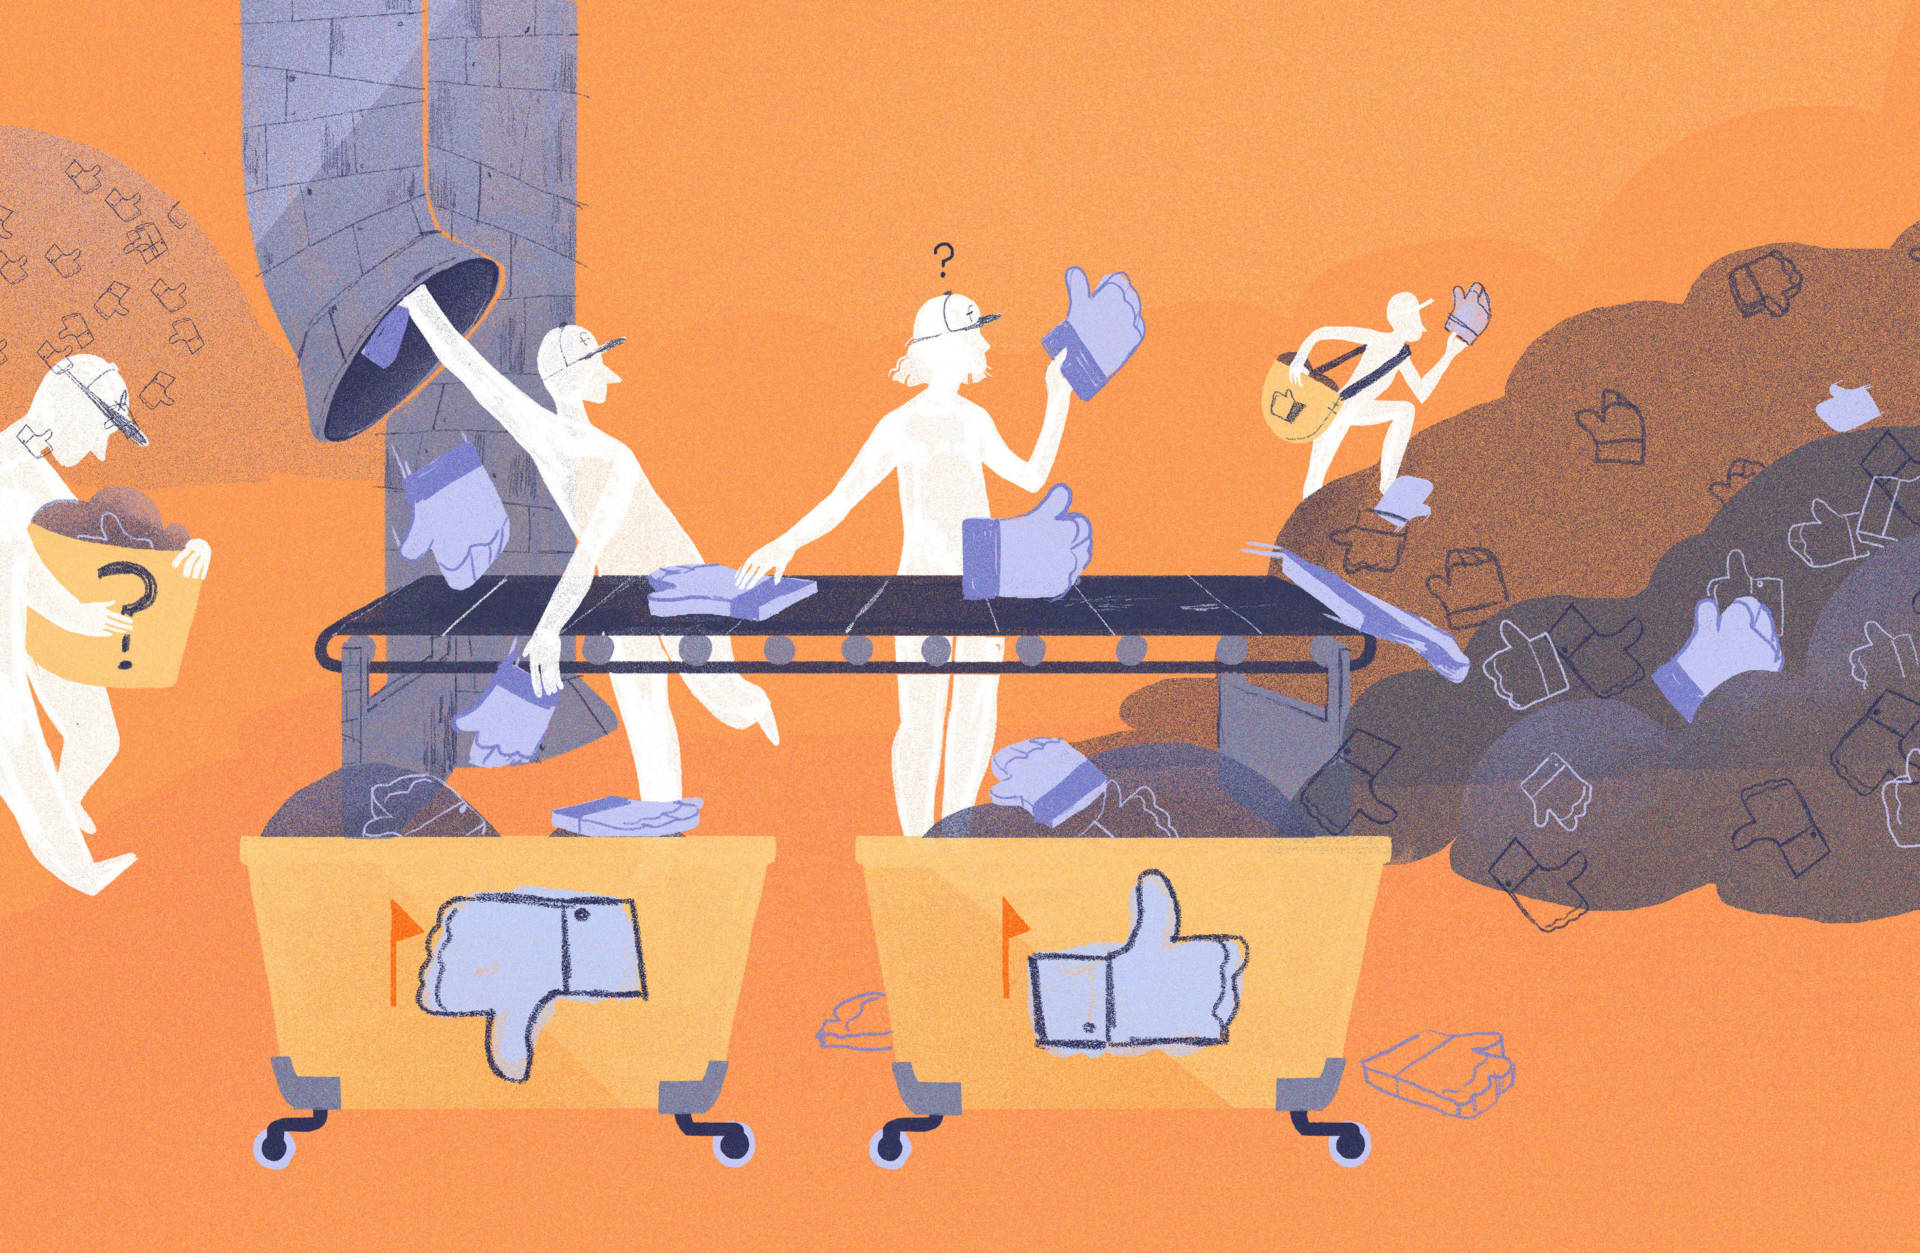 How does Facebook decide when to take down controversial images and posts? Chelsea Beck/NPR